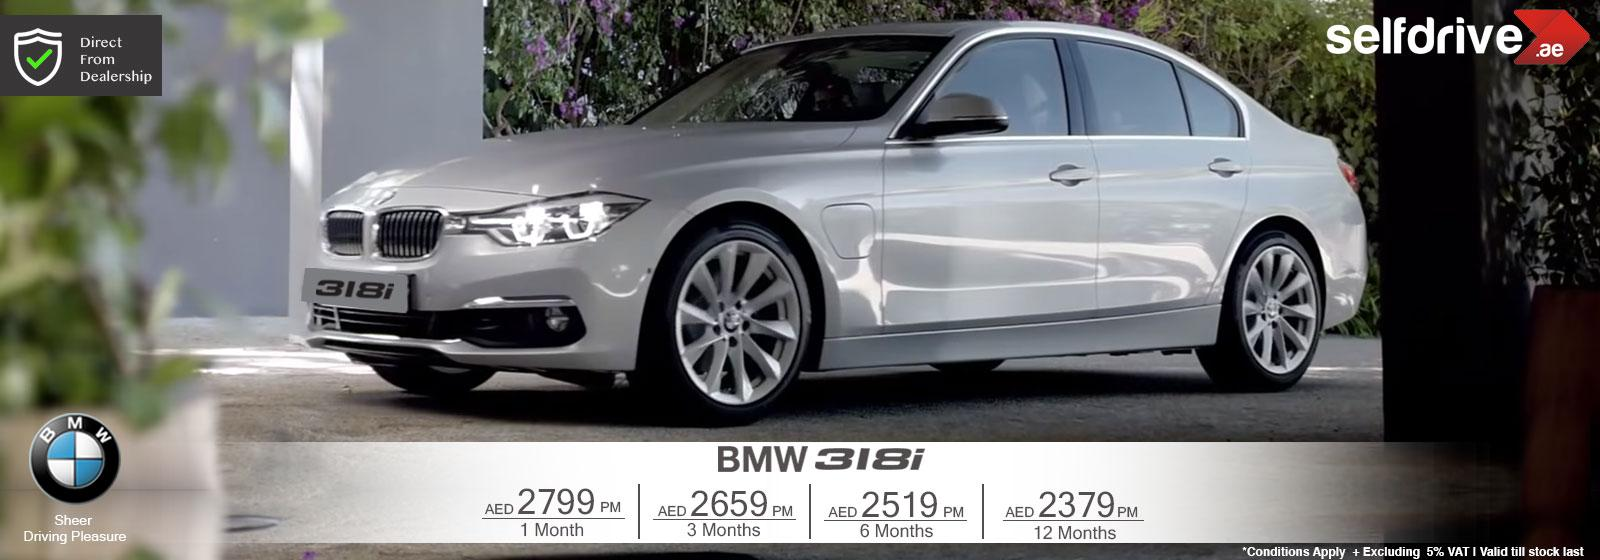 Rent a car BMW318i Dubai